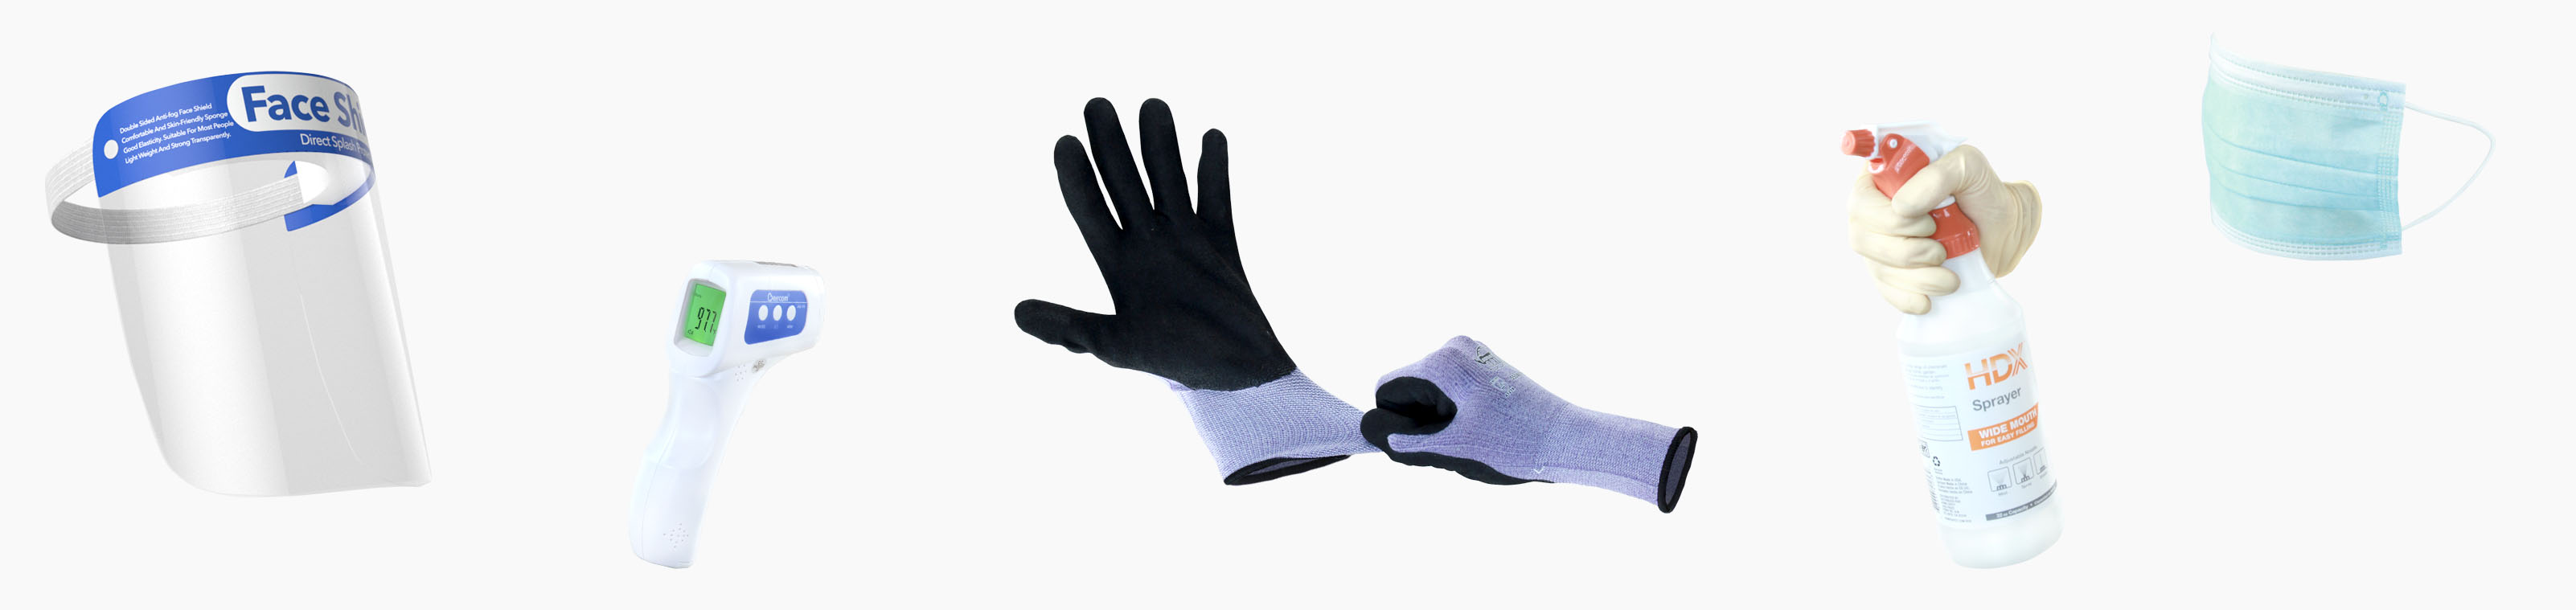 images of safety supplies PPE